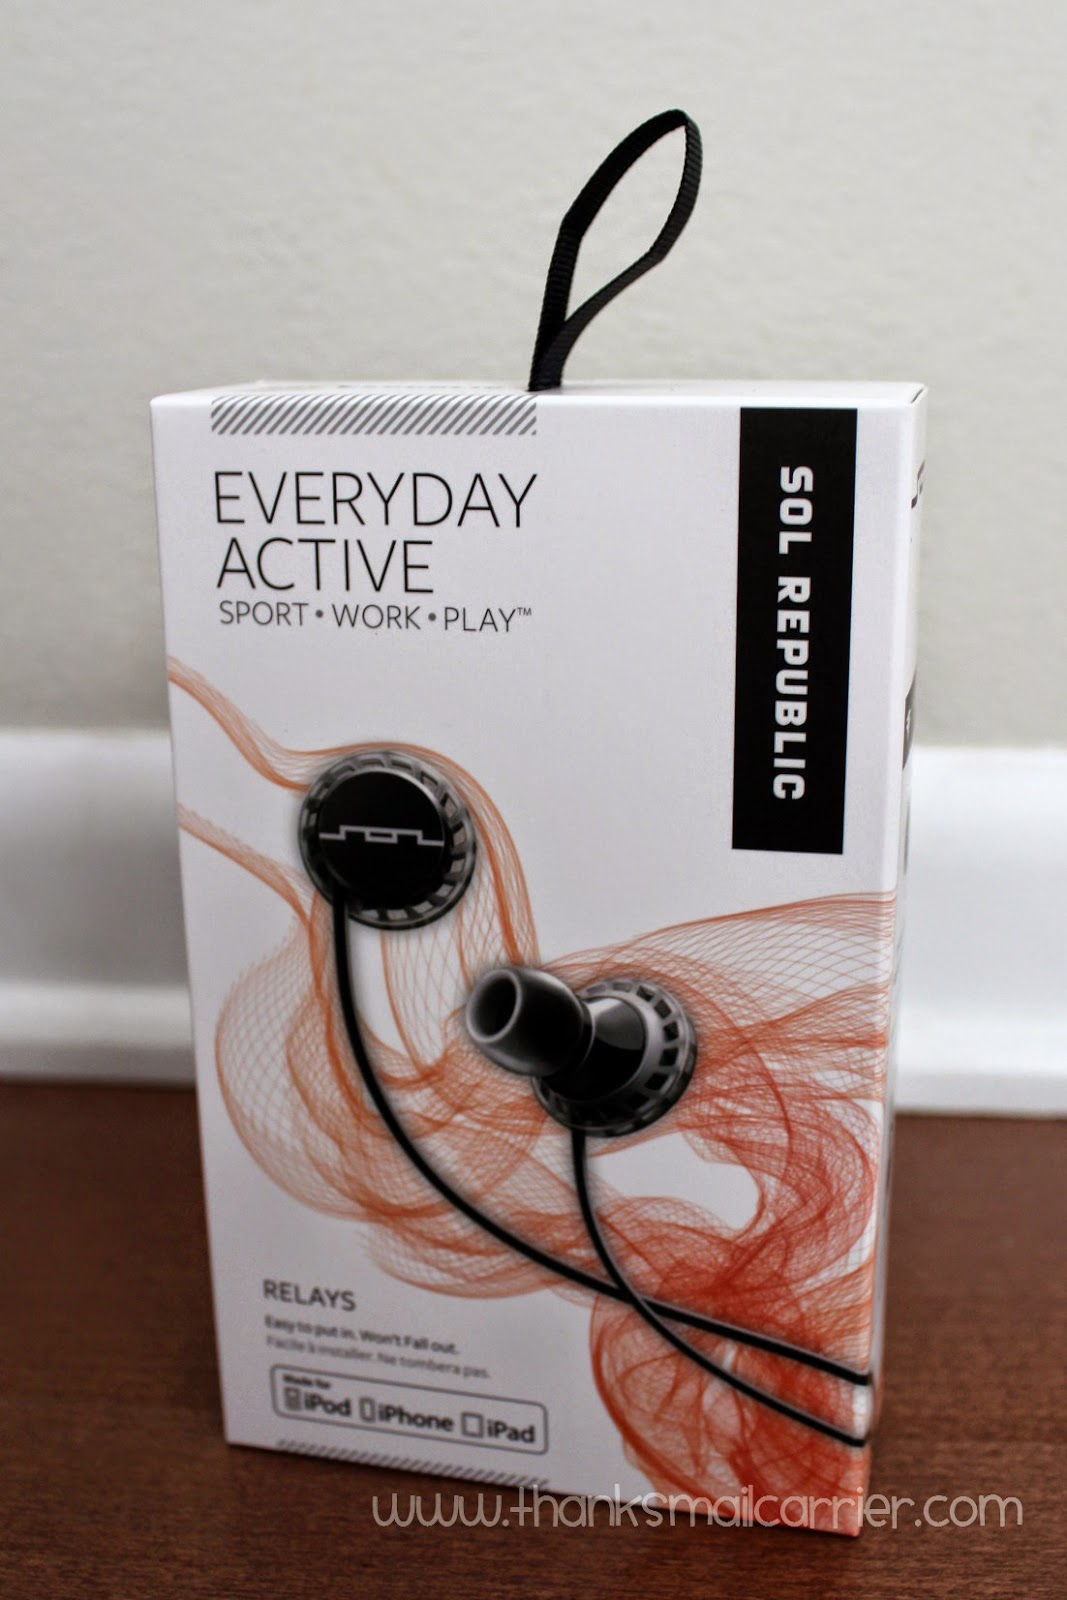 Sol Republic earphones